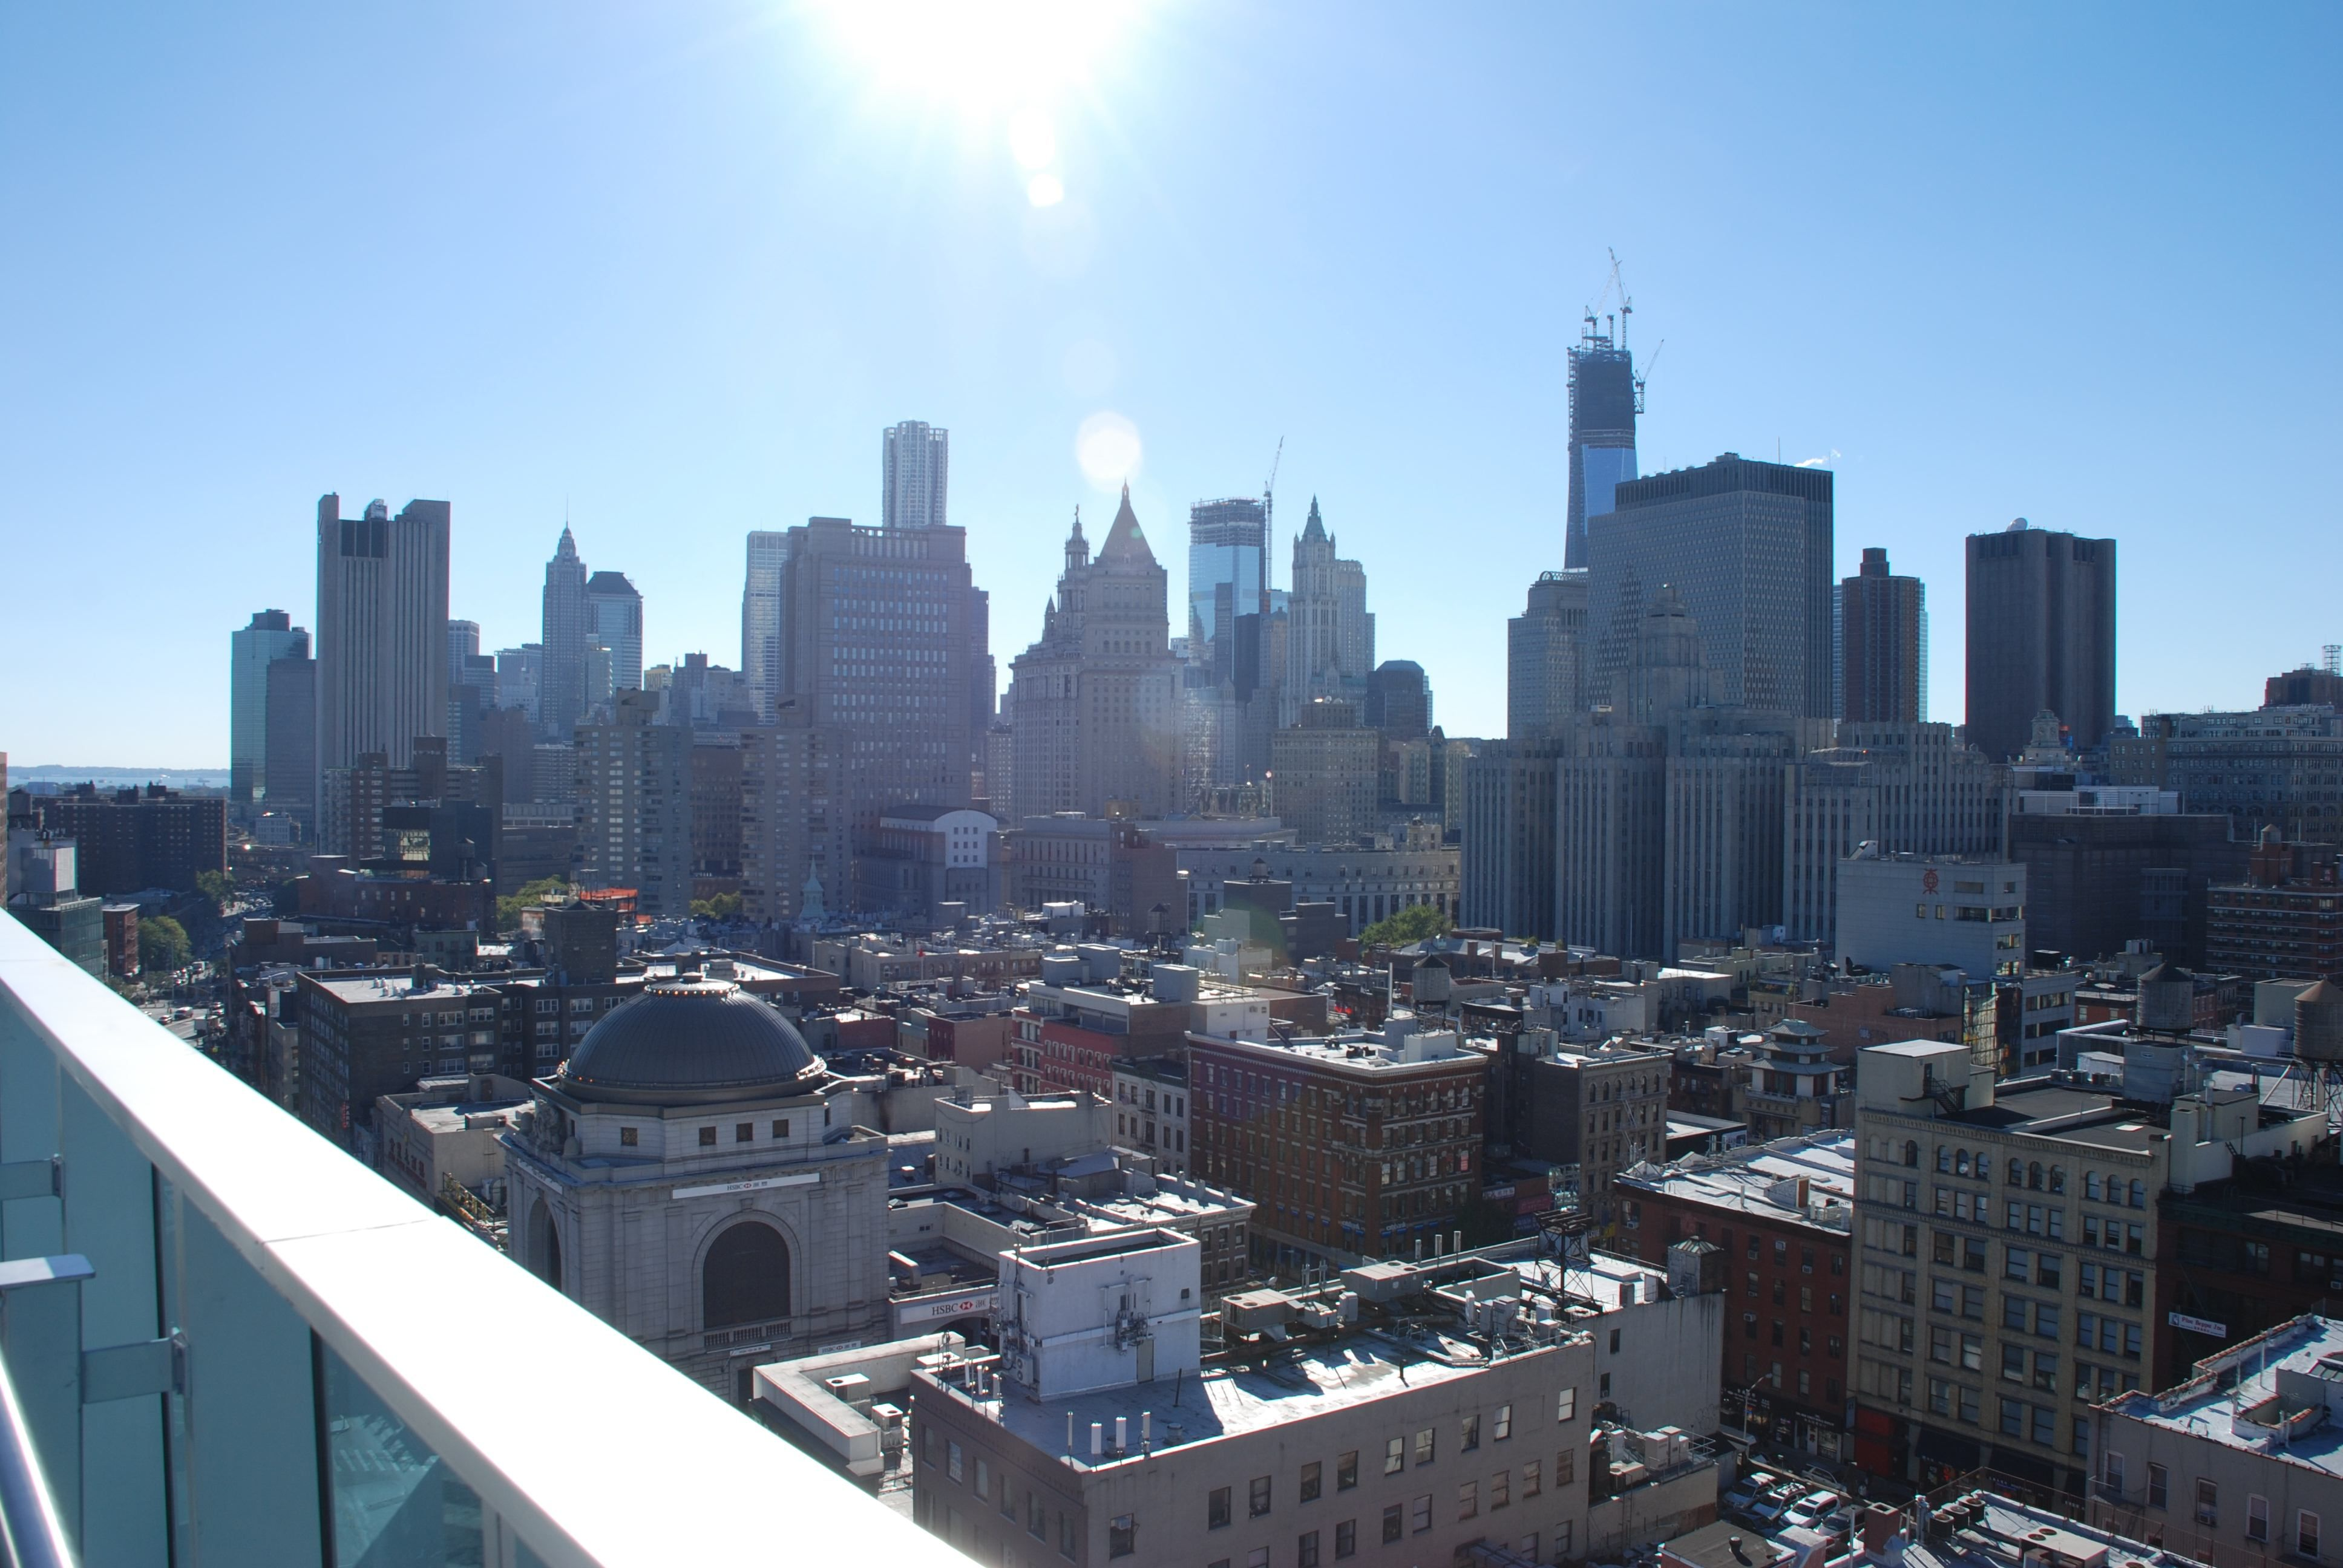 View Of The Lower East Side From Wyndham Garden Rooftop Lower East Side Rooftop Wyndham